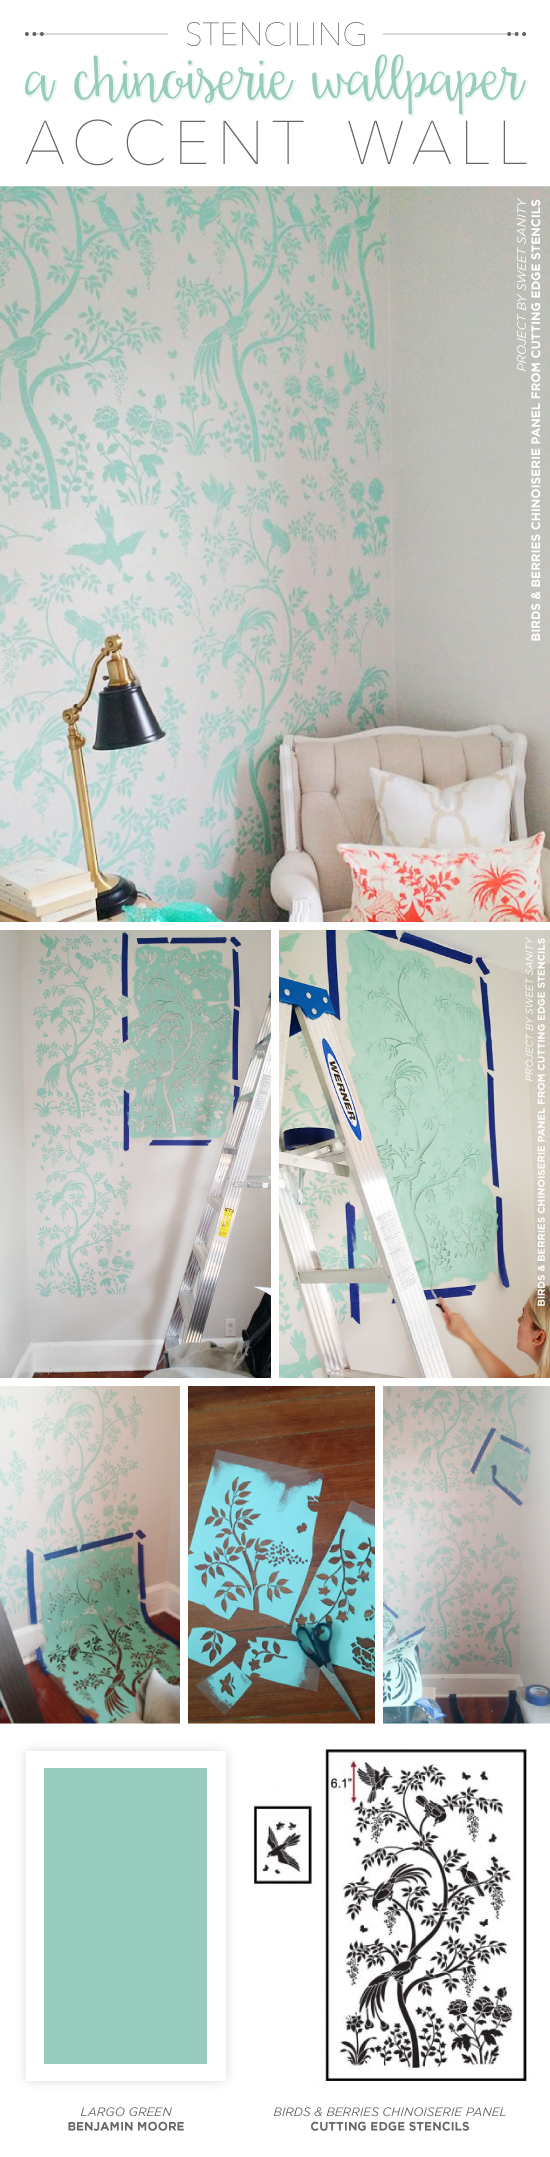 Stenciling a chinoiserie wallpaper accent wall stencil stories cutting edge stencils shares how to stencil the chinoiserie birds and berries wall mural panel for amipublicfo Image collections